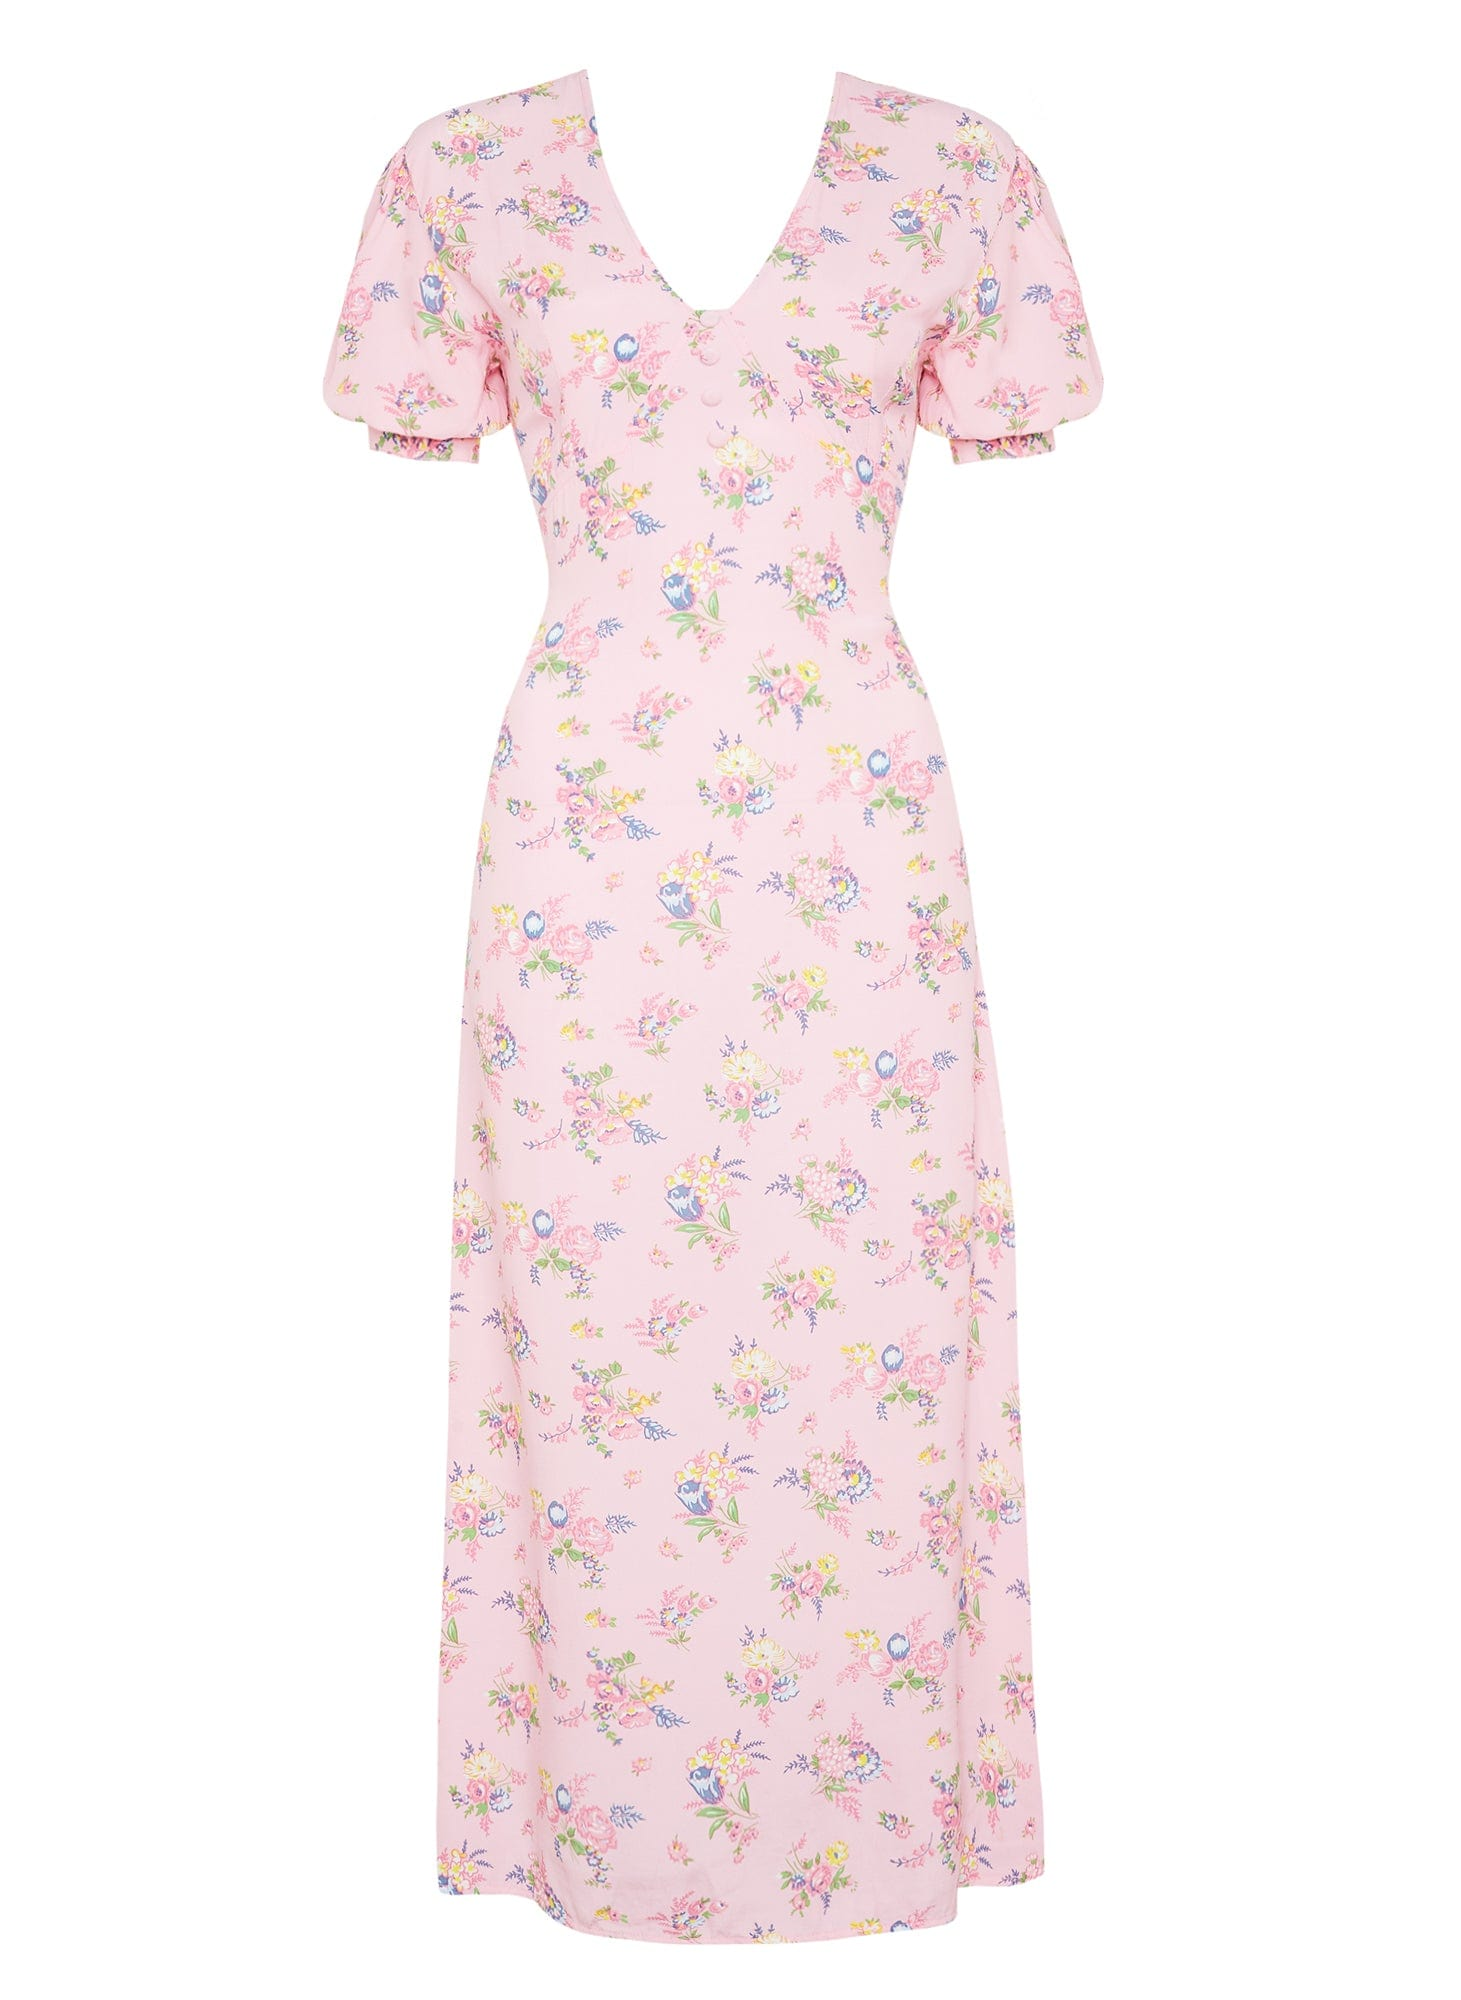 Daija Midi Dress Juliette Floral Pink